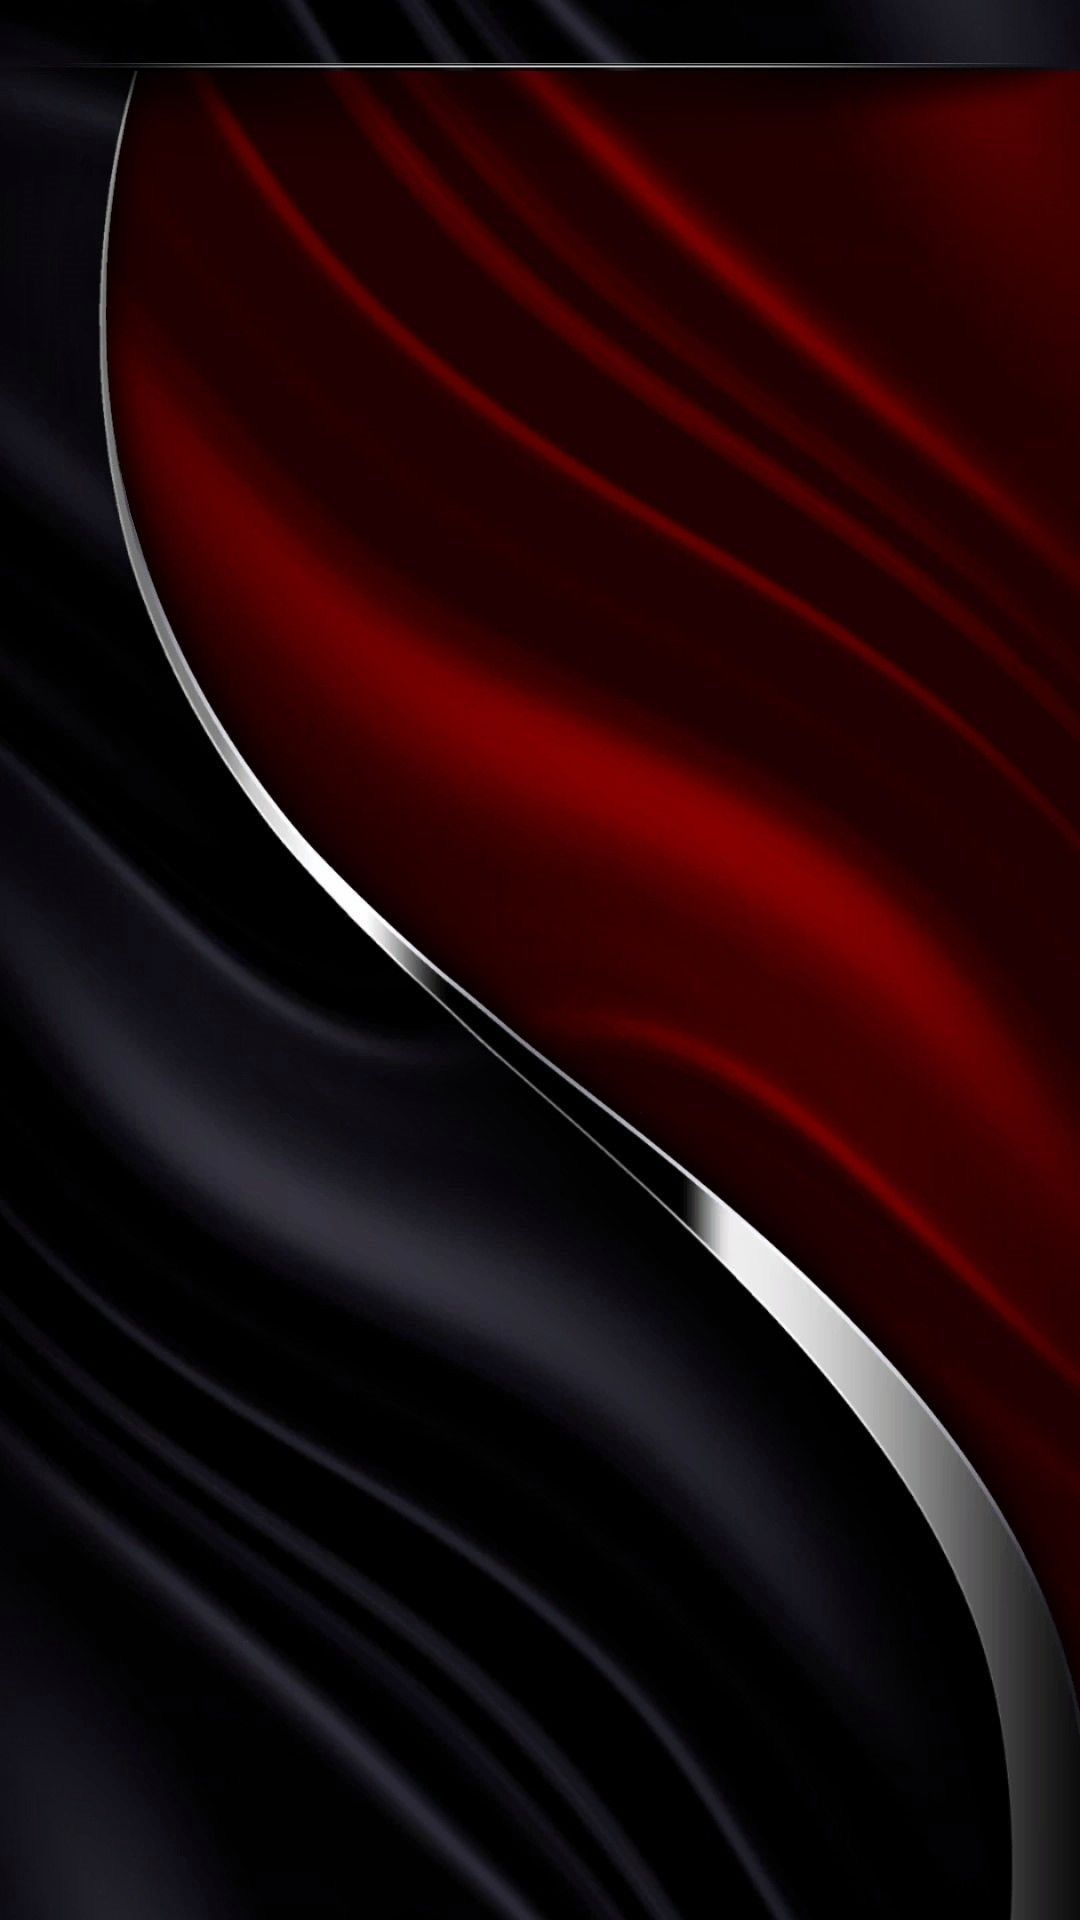 Abstract iphone wallpaper by ALI🌹علي on صور للتصميمPhotos